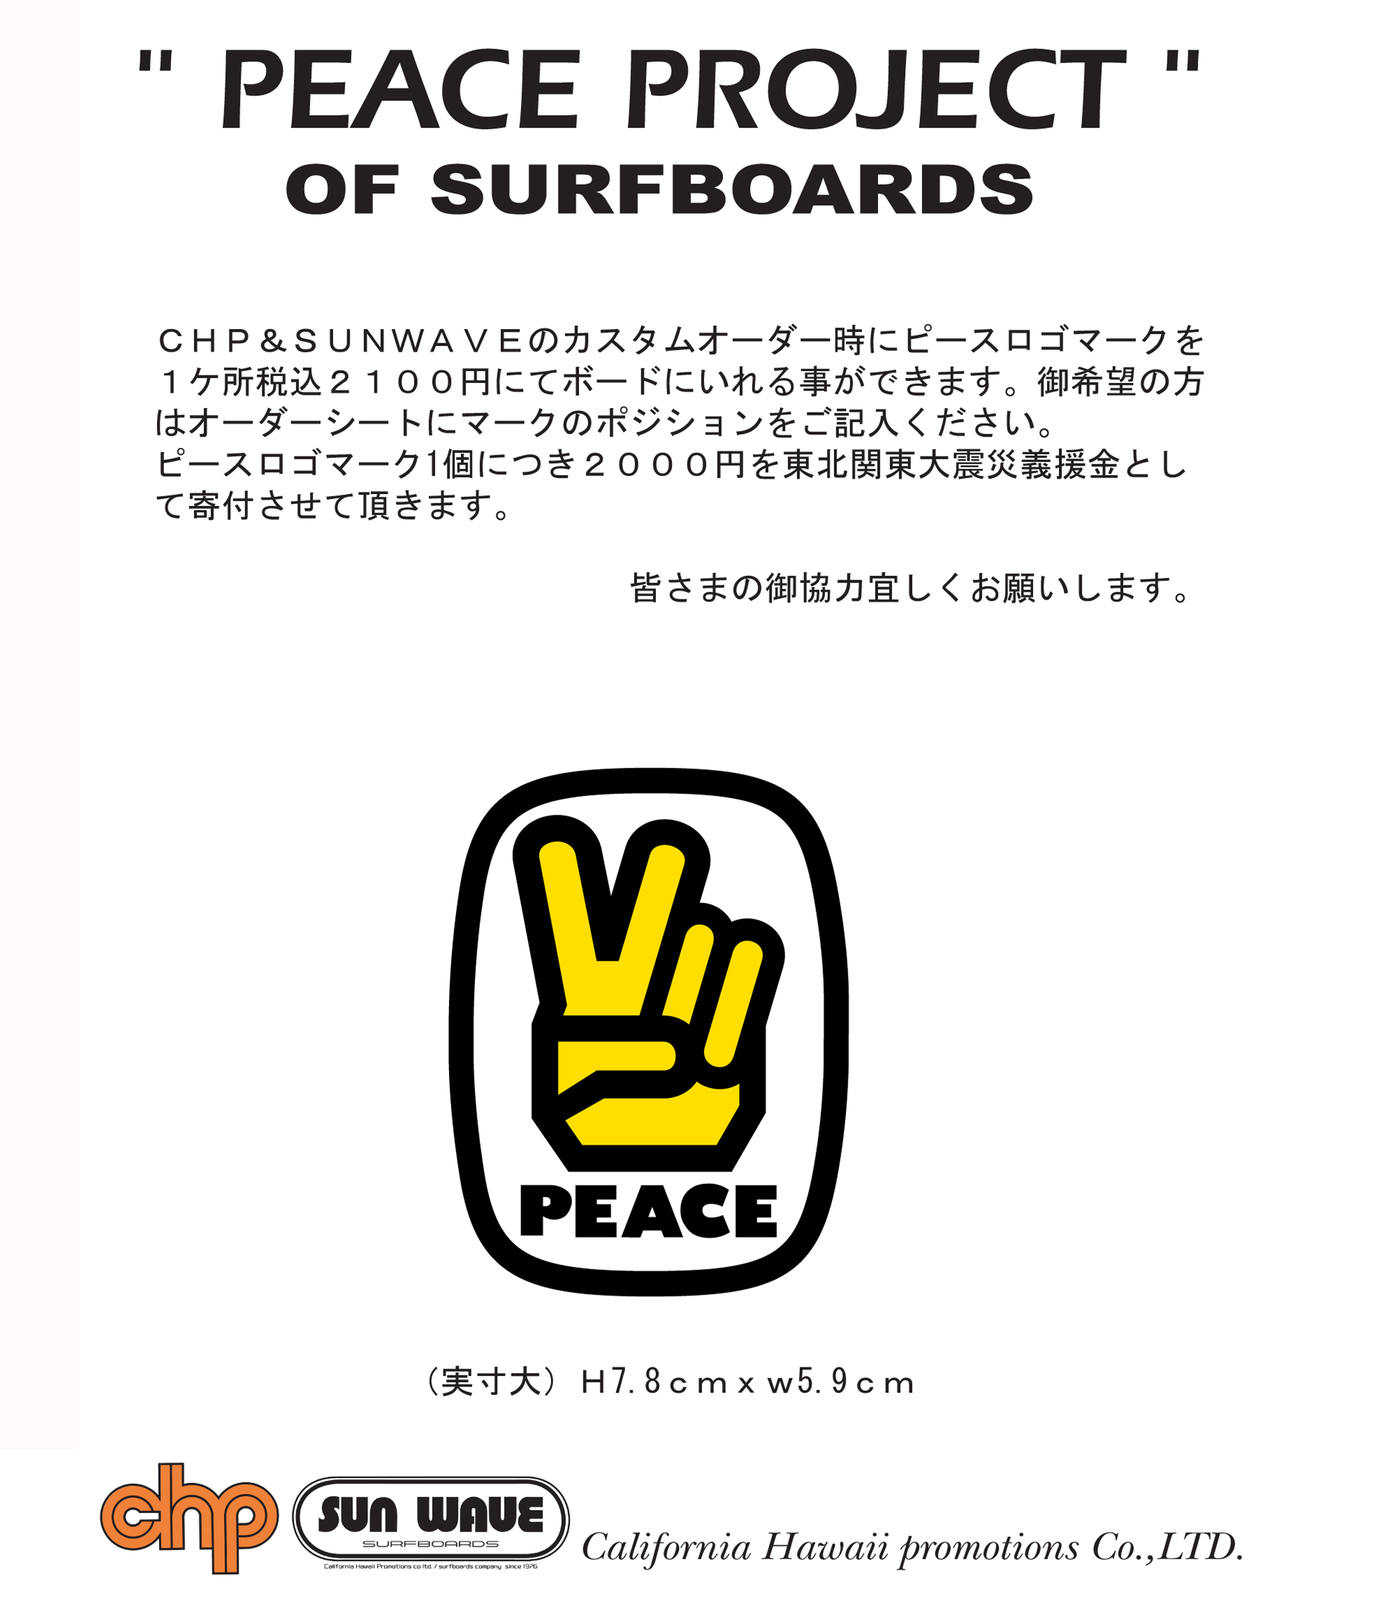 Peace_of_surfboardspdf